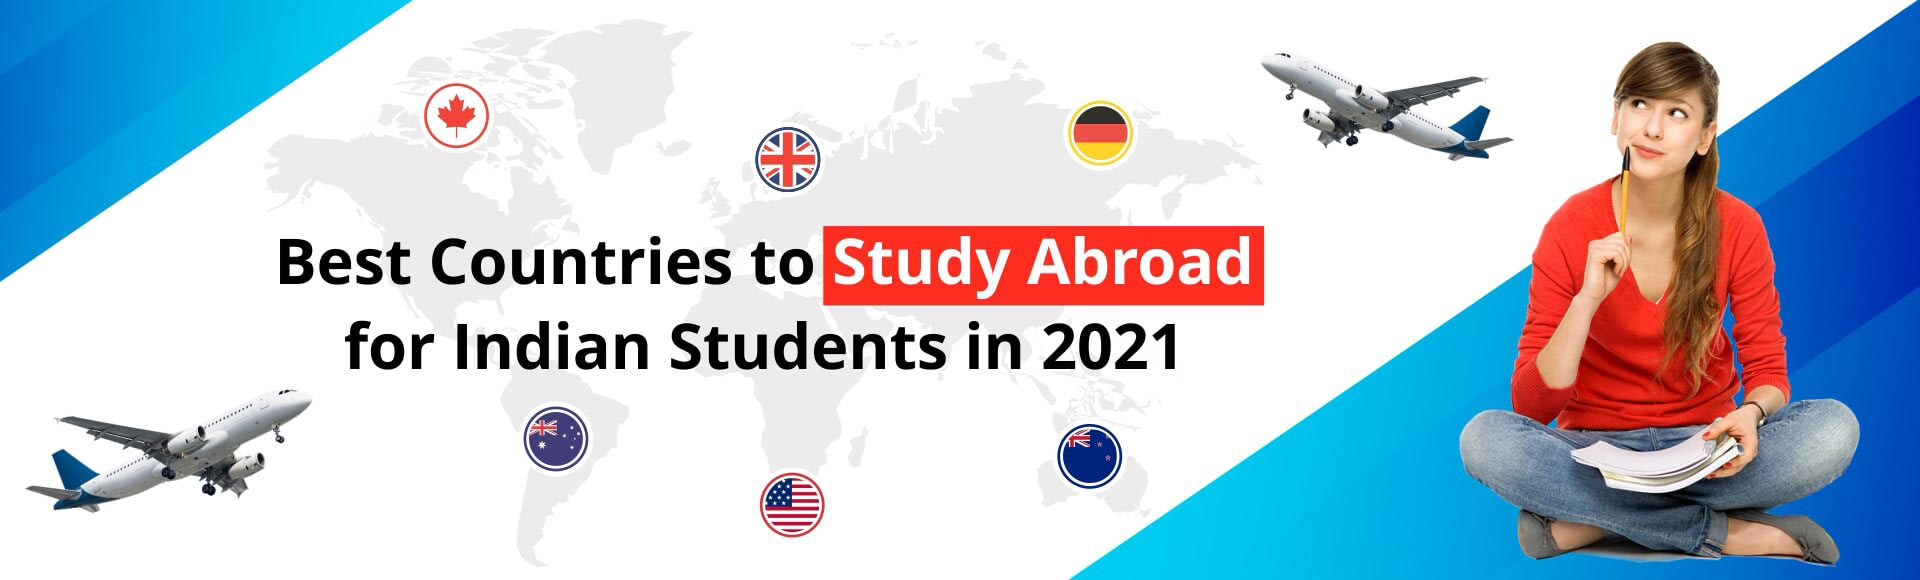 Best Countries to Study abroad for Indian students in 2021